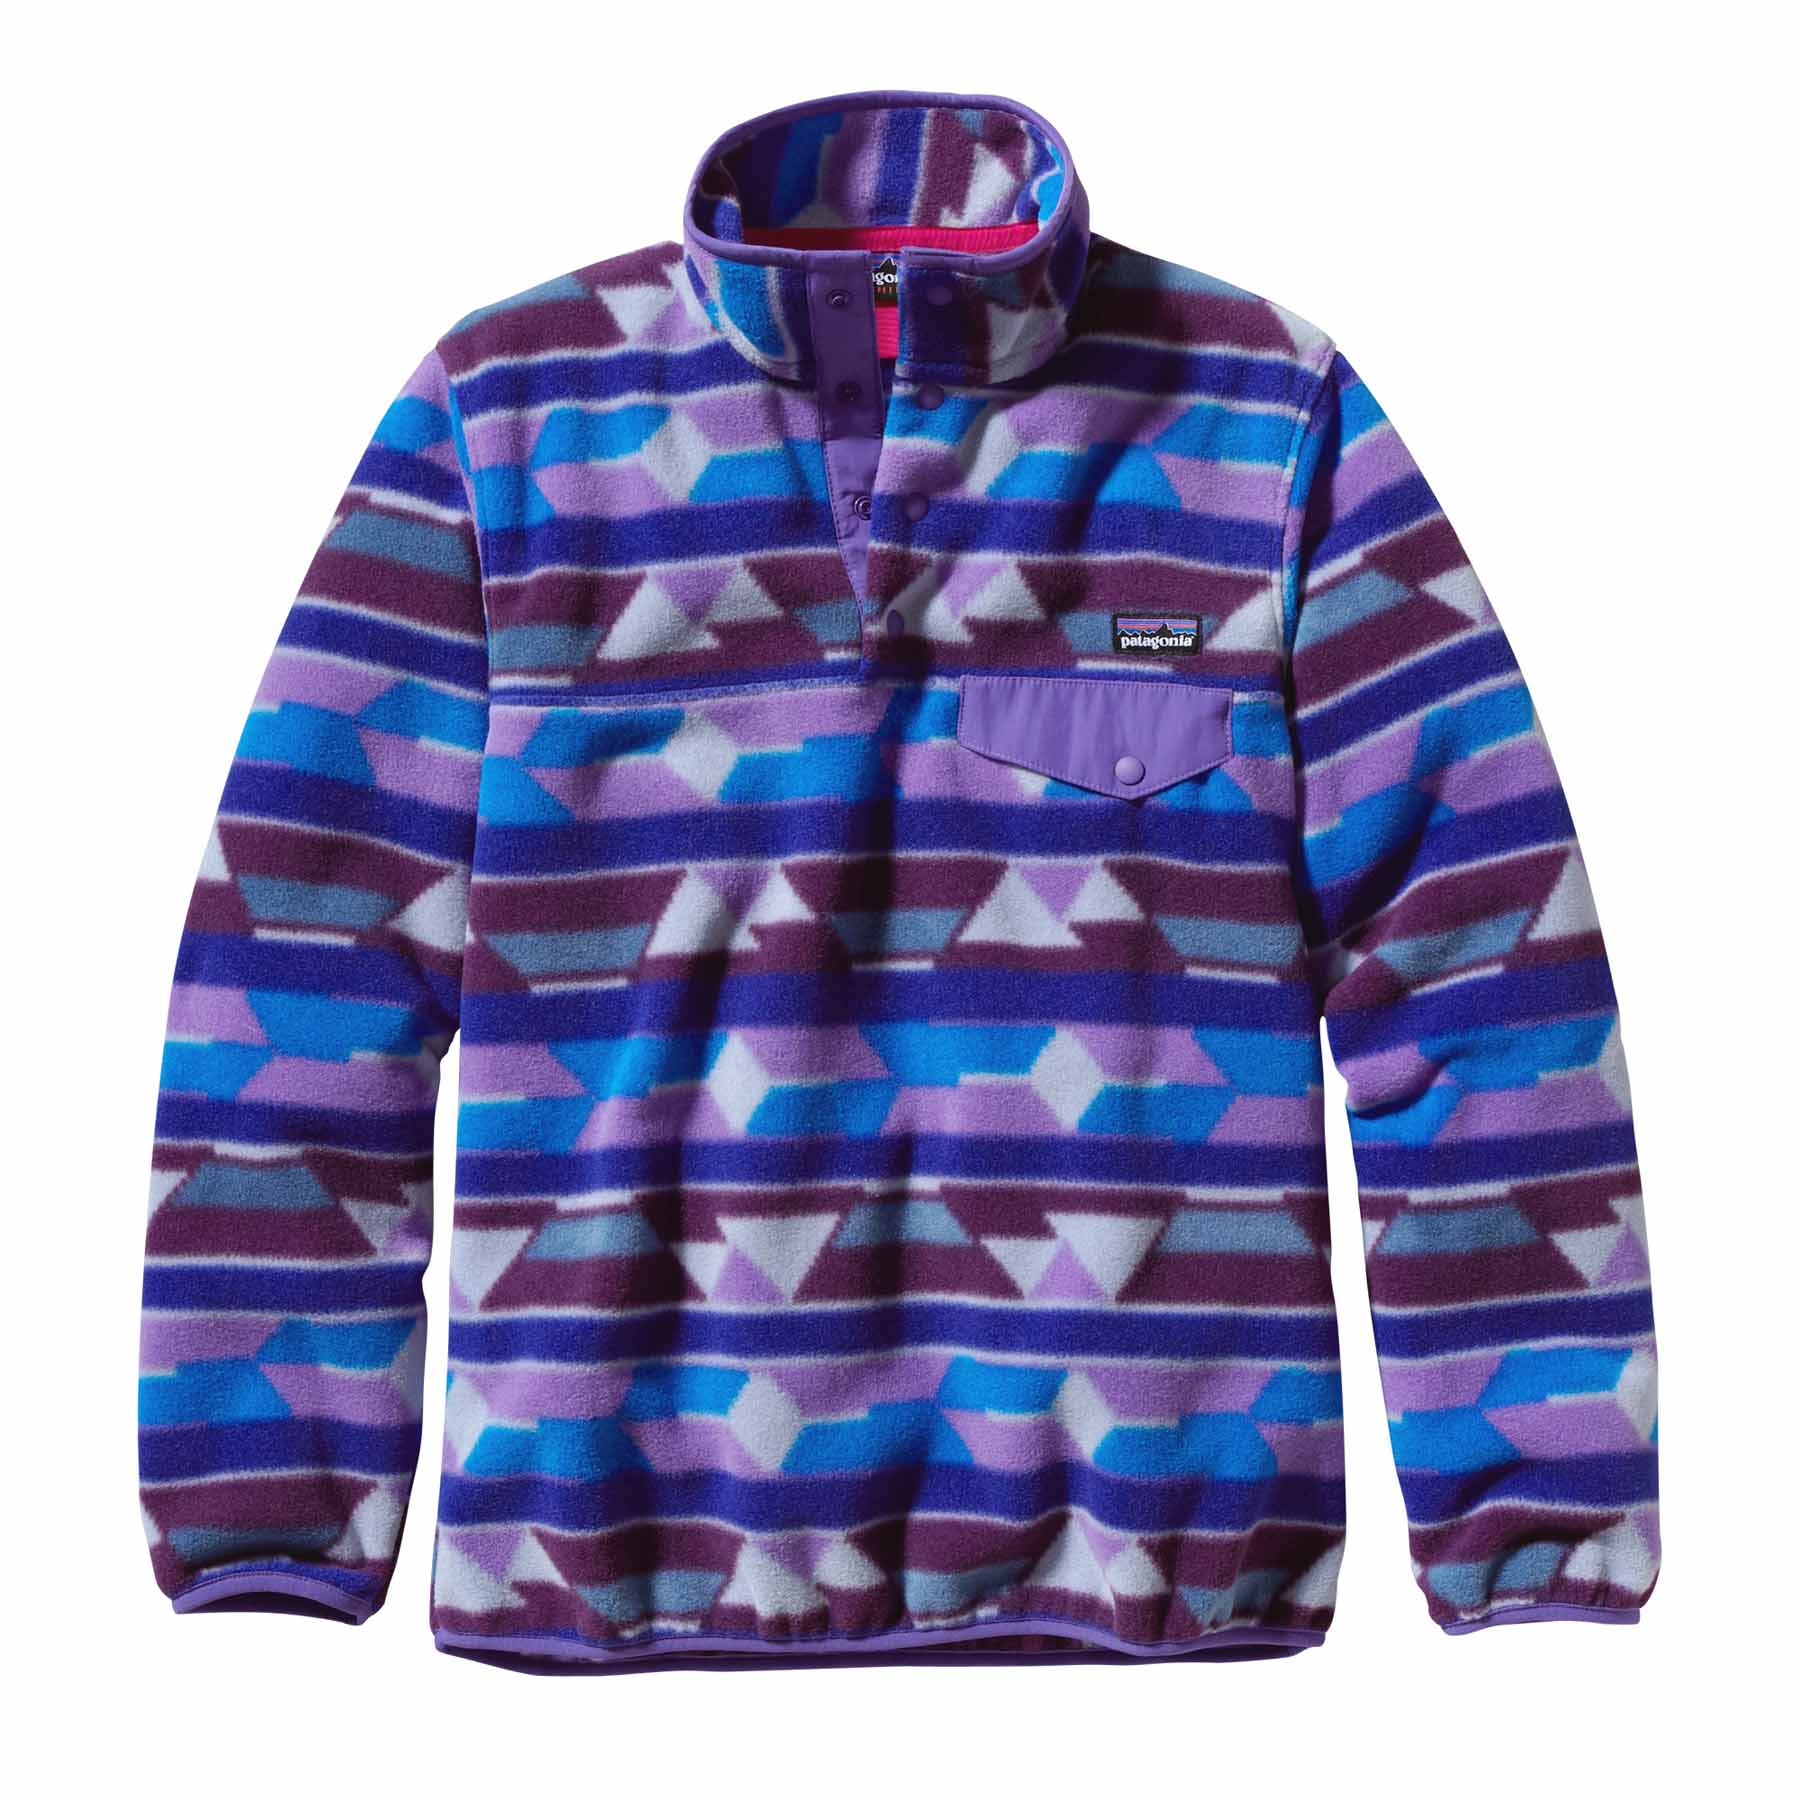 PATAGONIA W'S LW SYNCH SNAP-T P/O  (25455)